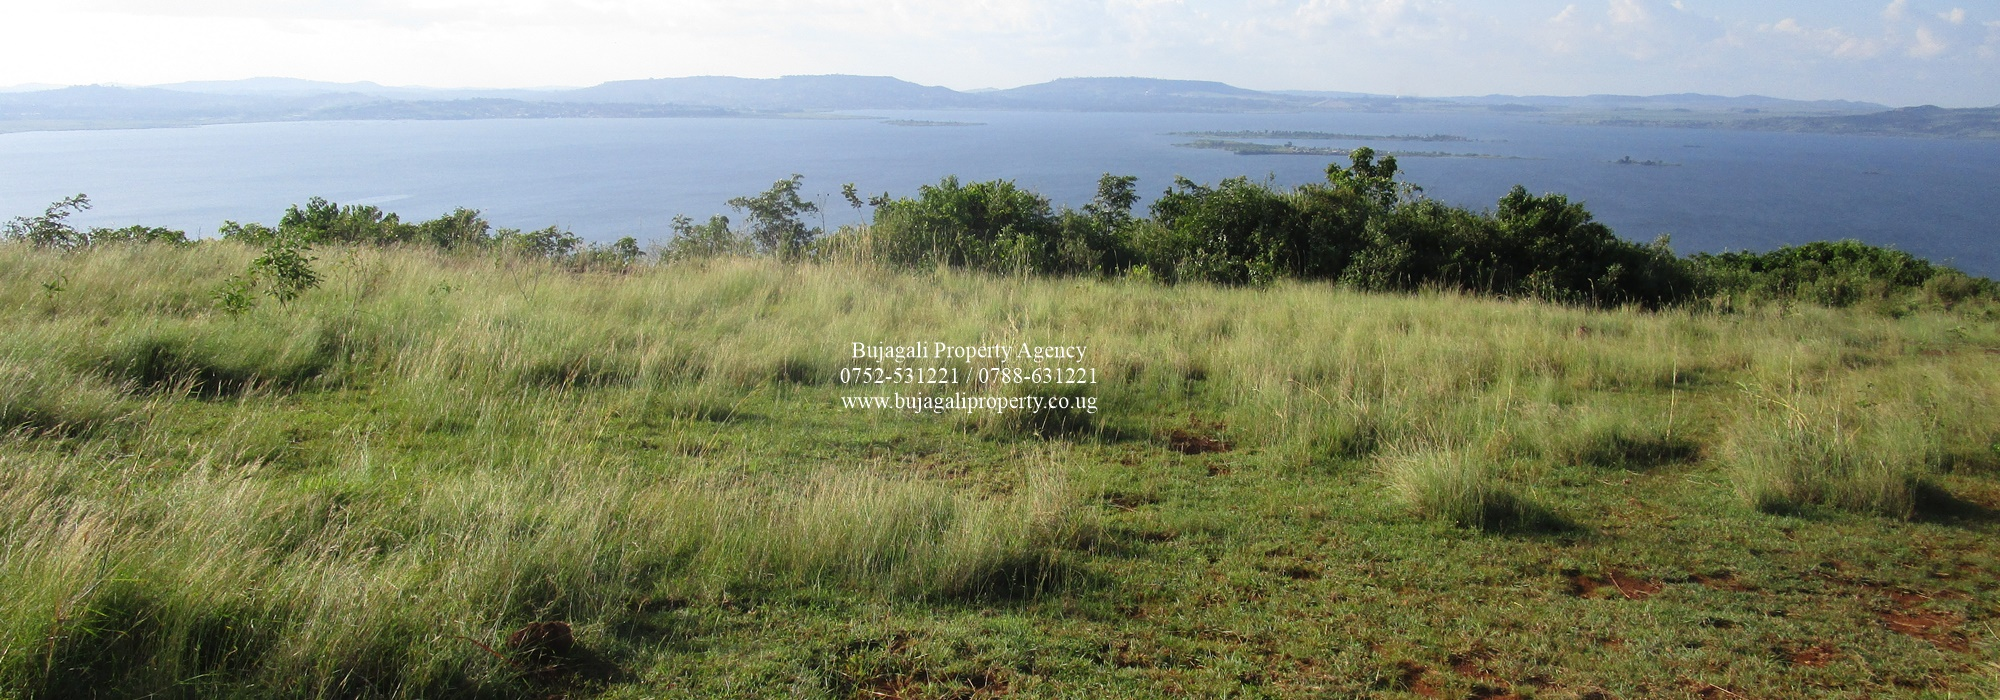 MAILO HILL TOP LAND FOR SALE AT JINJA NJERU TONGOLO